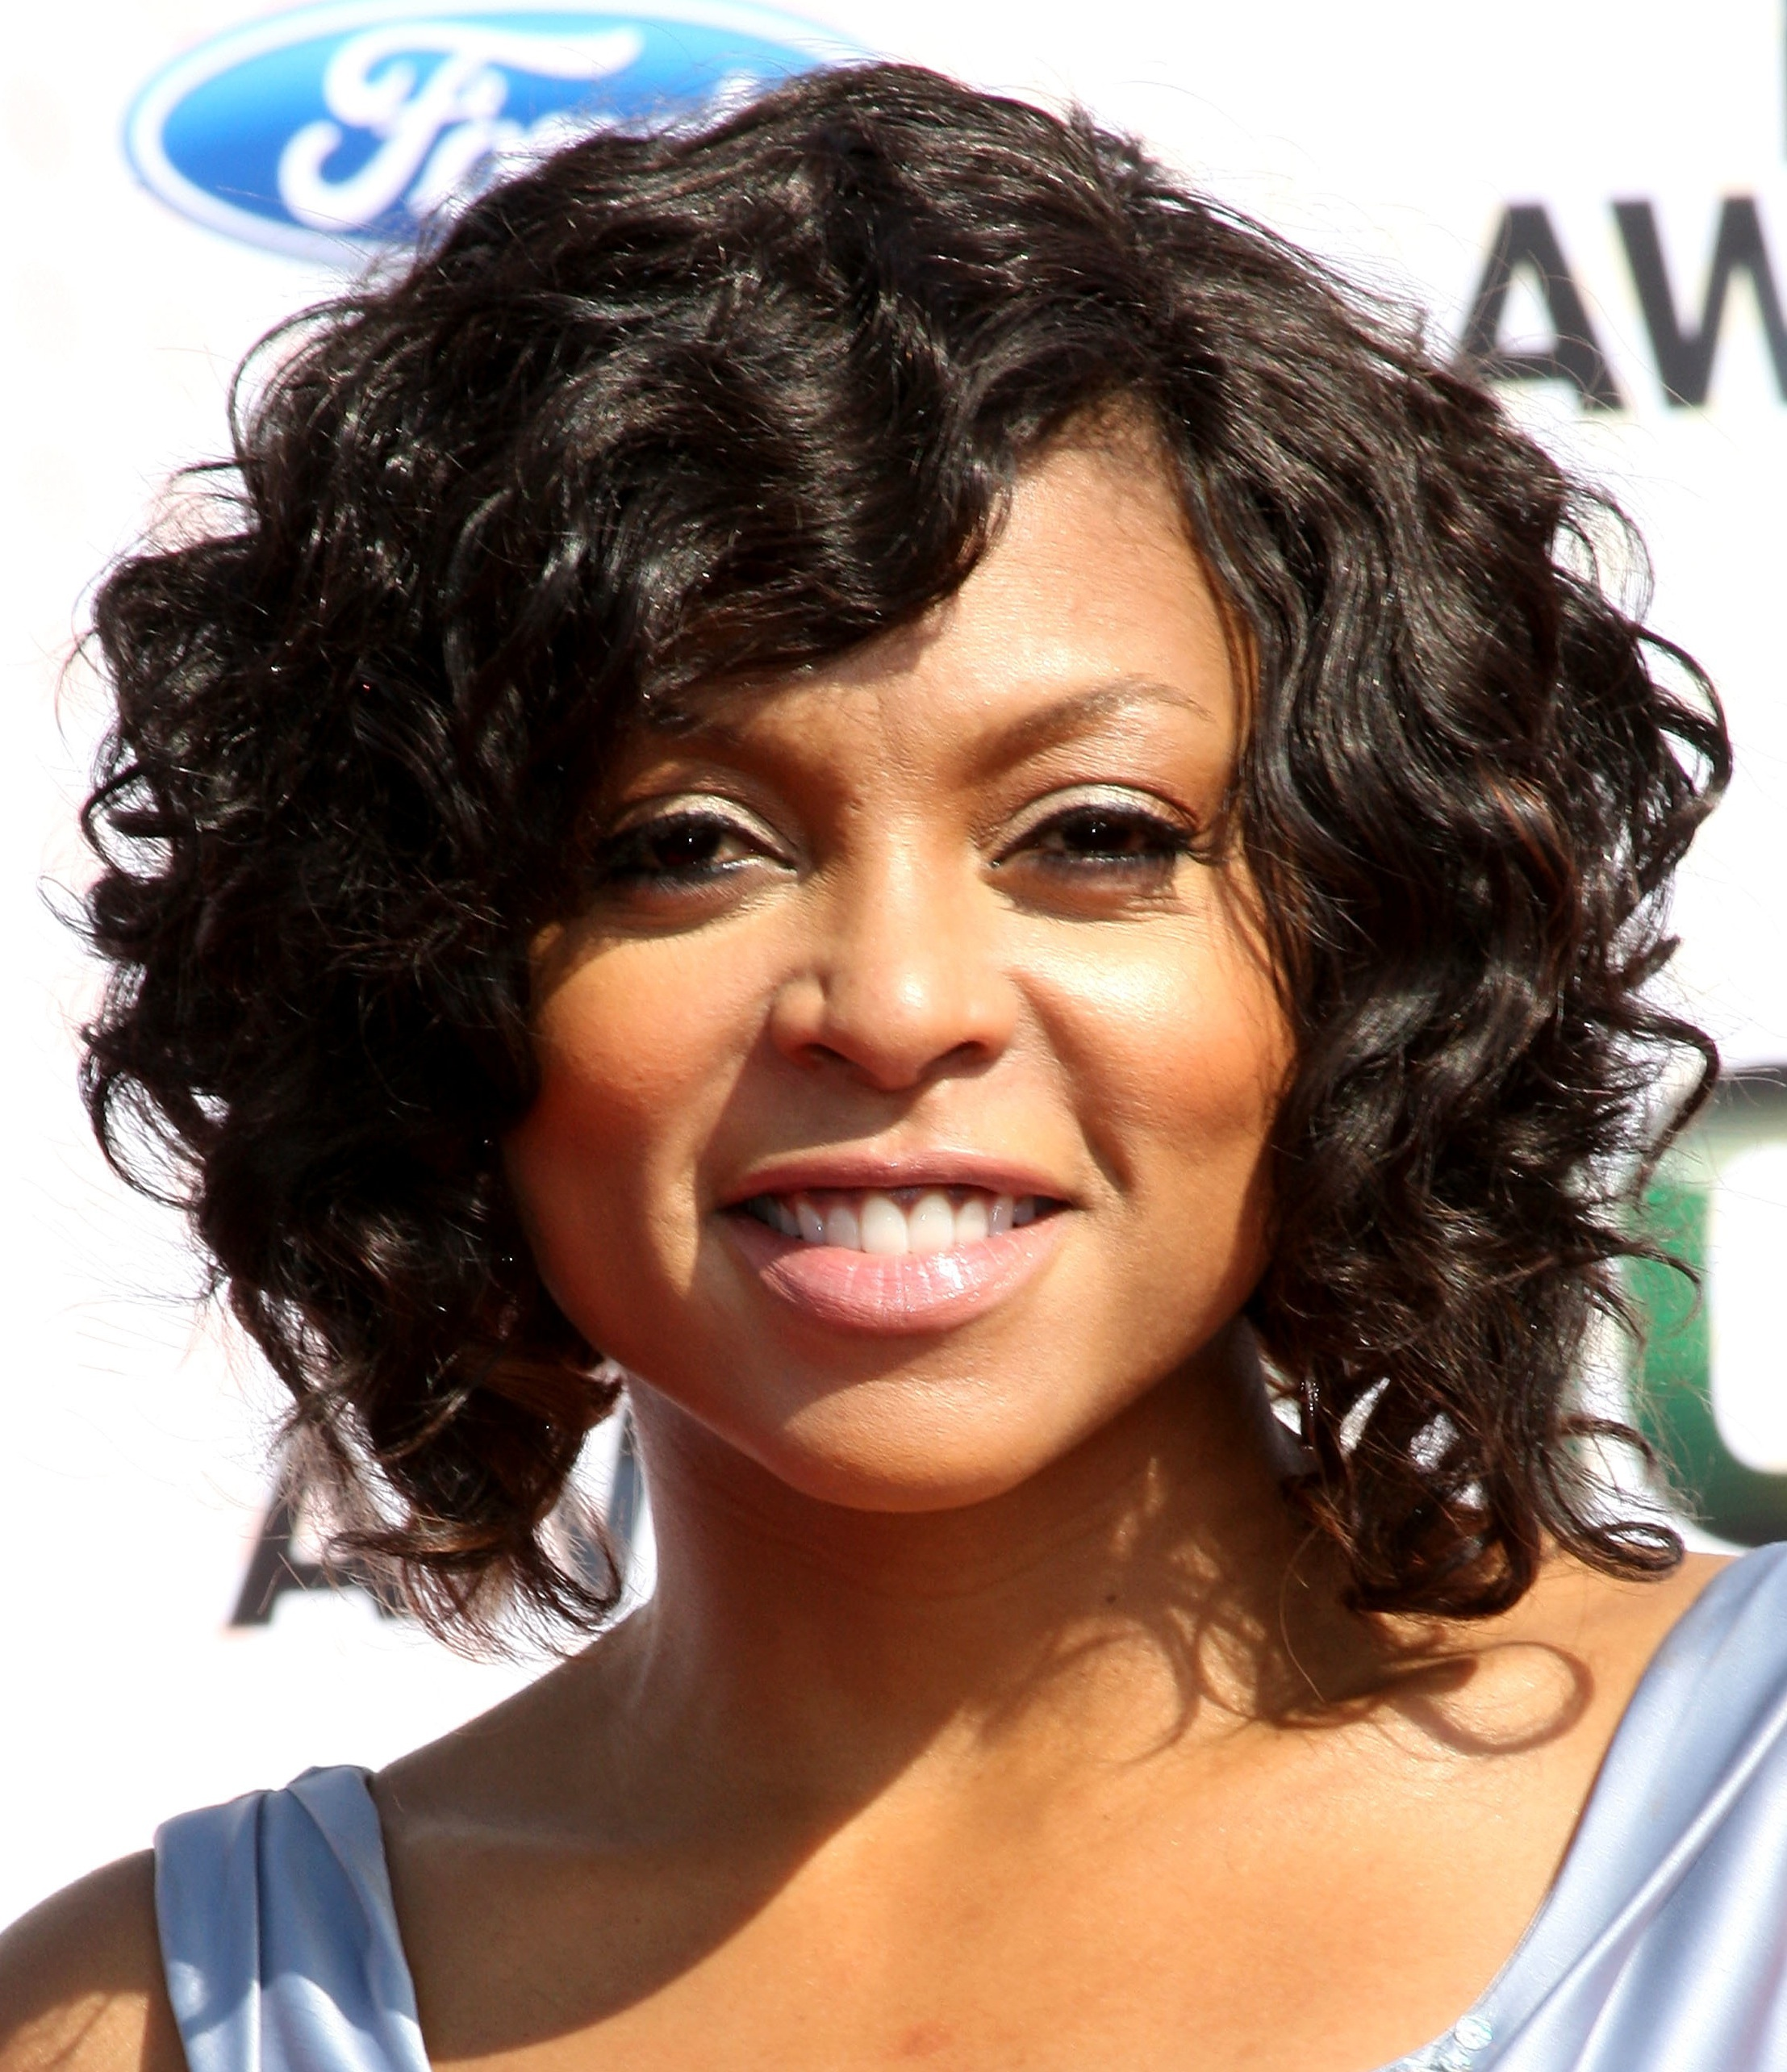 Stupendous Top 25 Short Curly Hairstyles For Black Women Hairstyles For Women Draintrainus